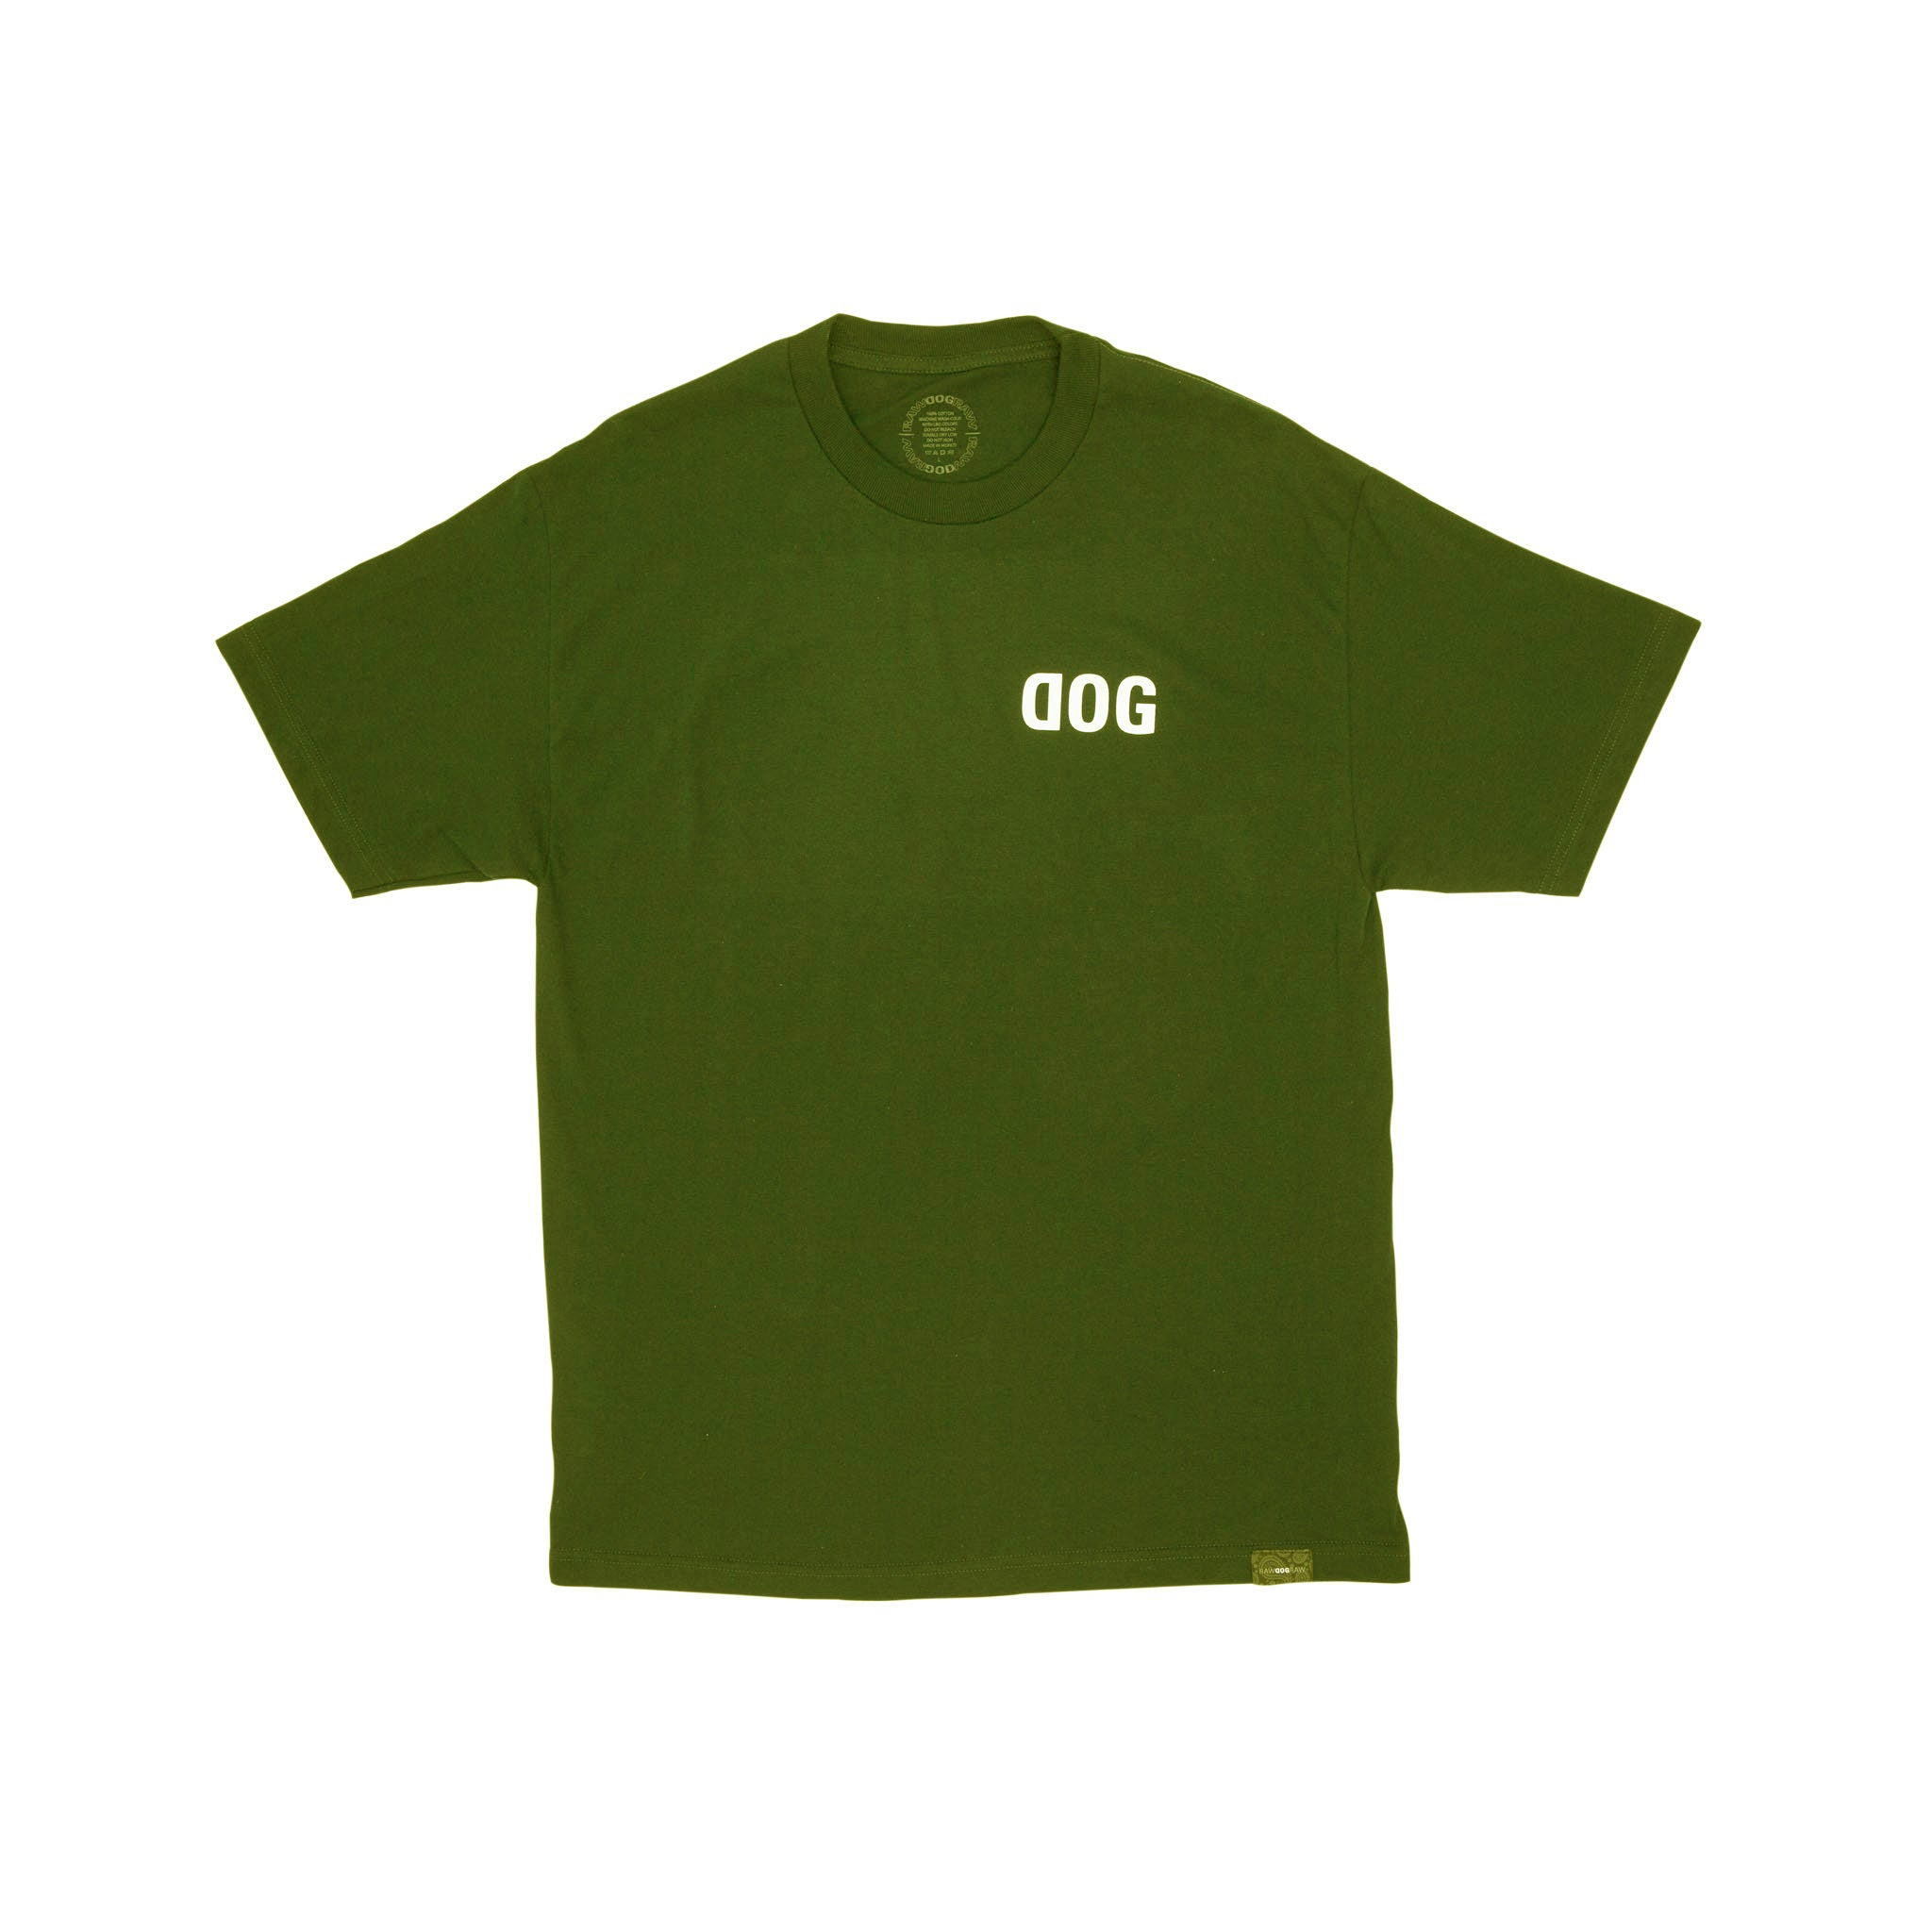 DOG OG Military Green T-Shirt